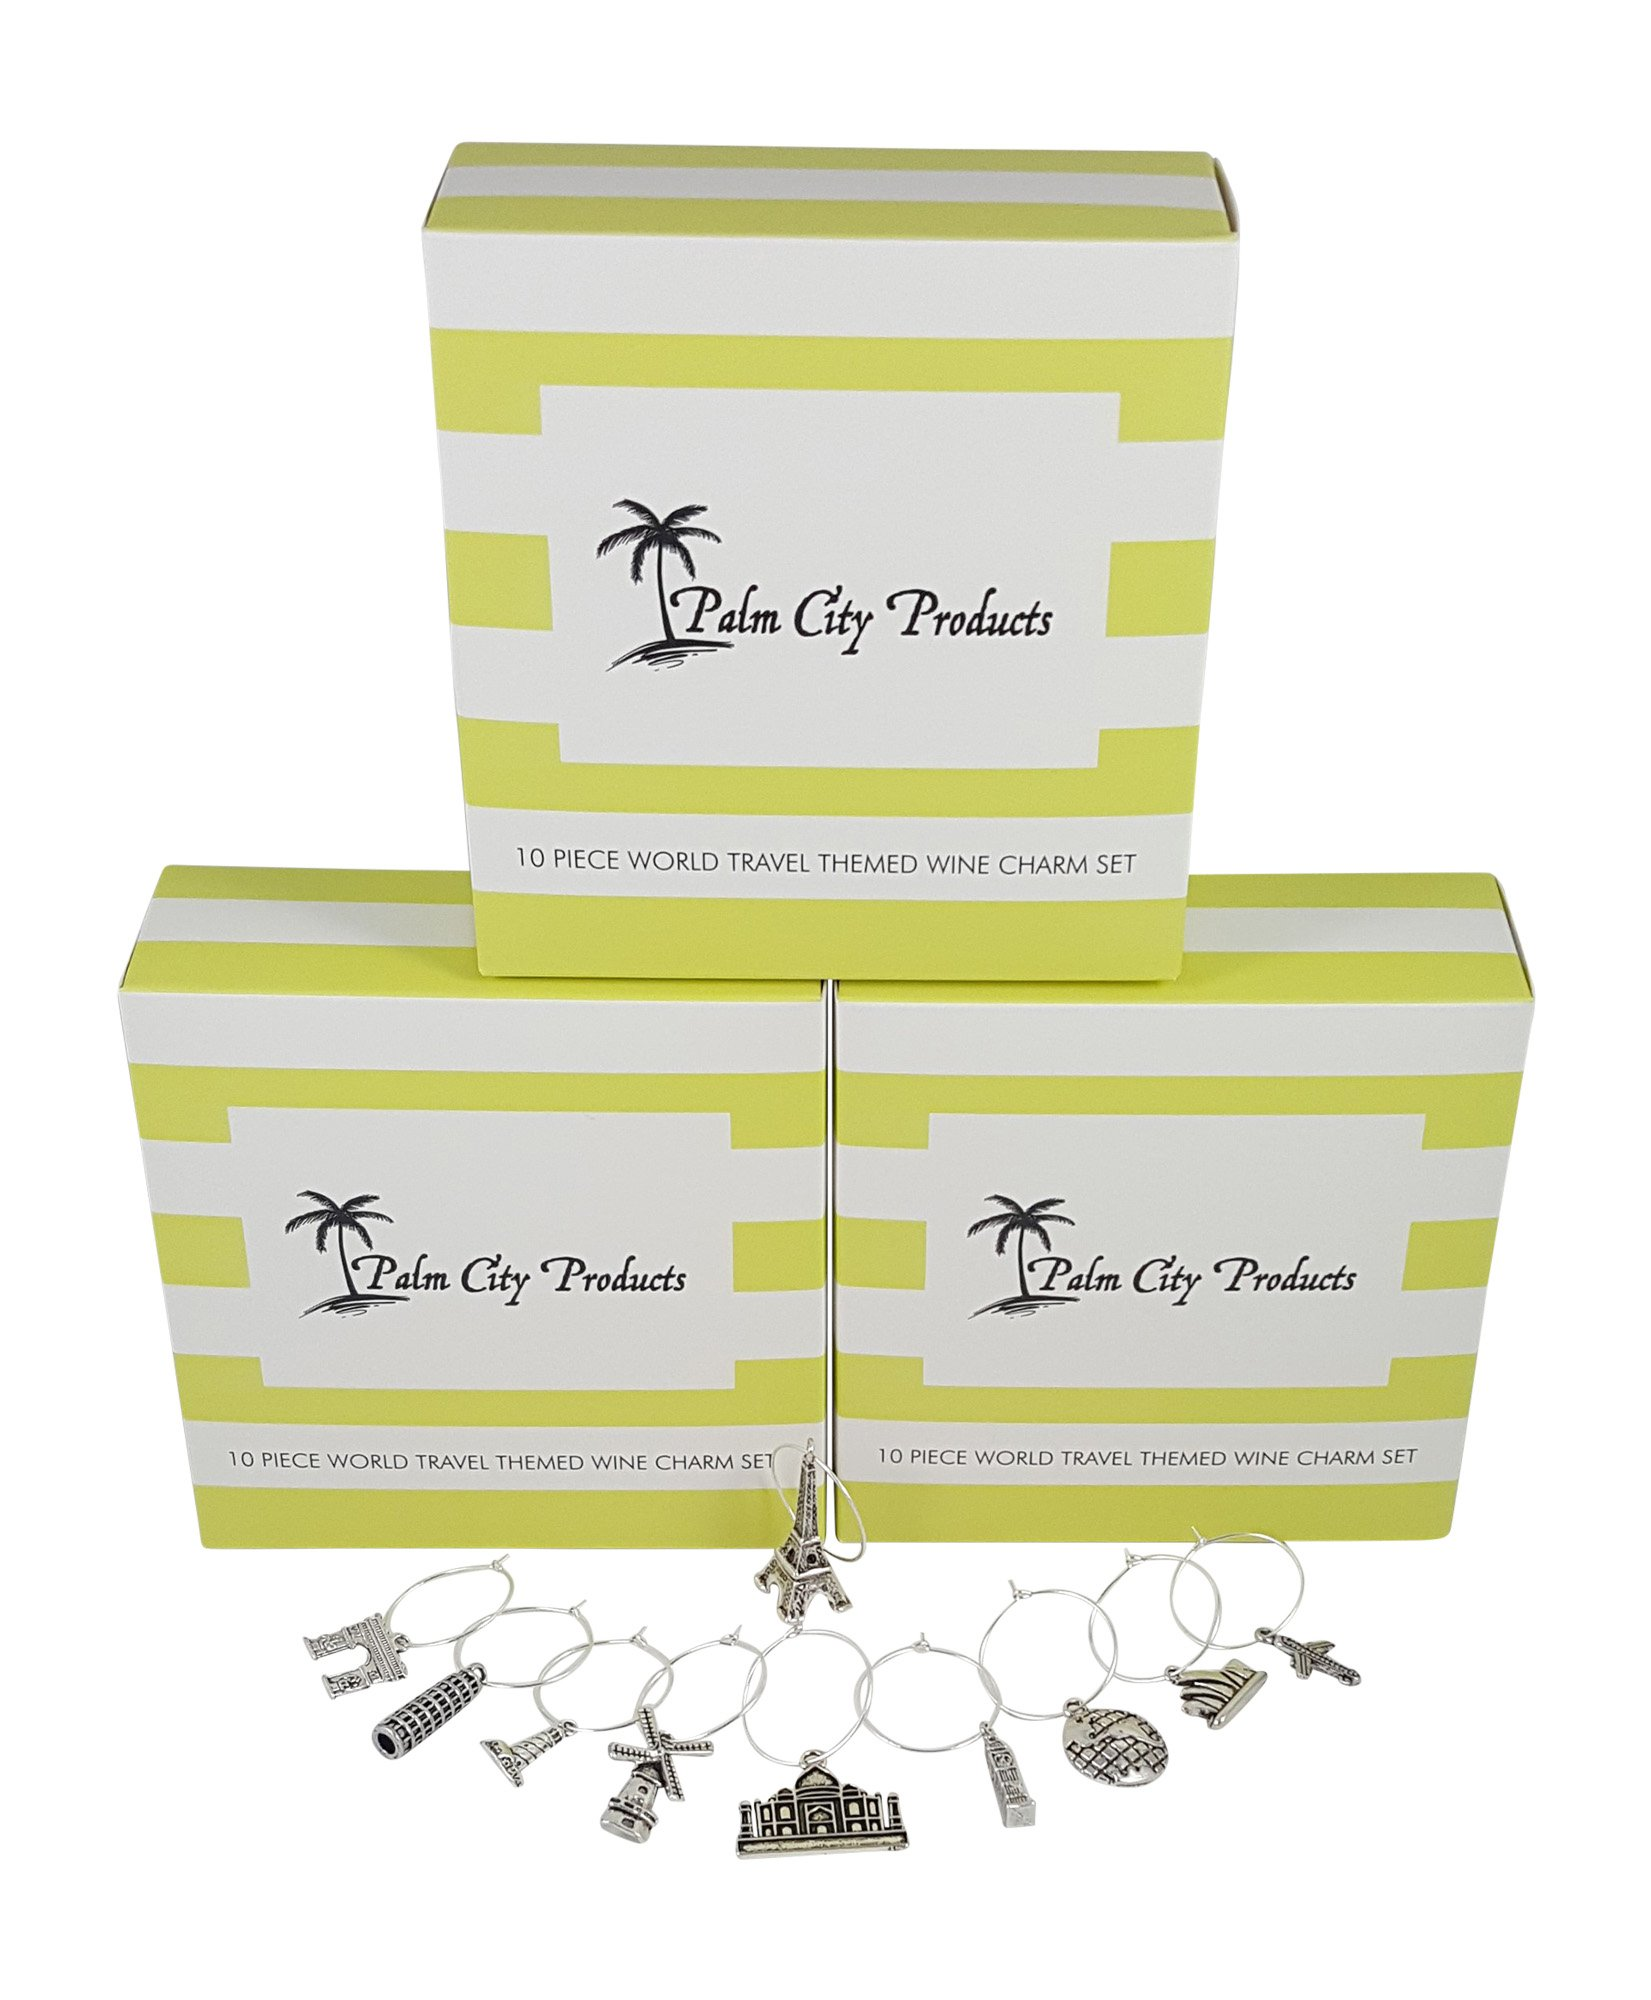 Palm City Products Bundle of 3 Travel Themed Charm Sets by Palm City Products